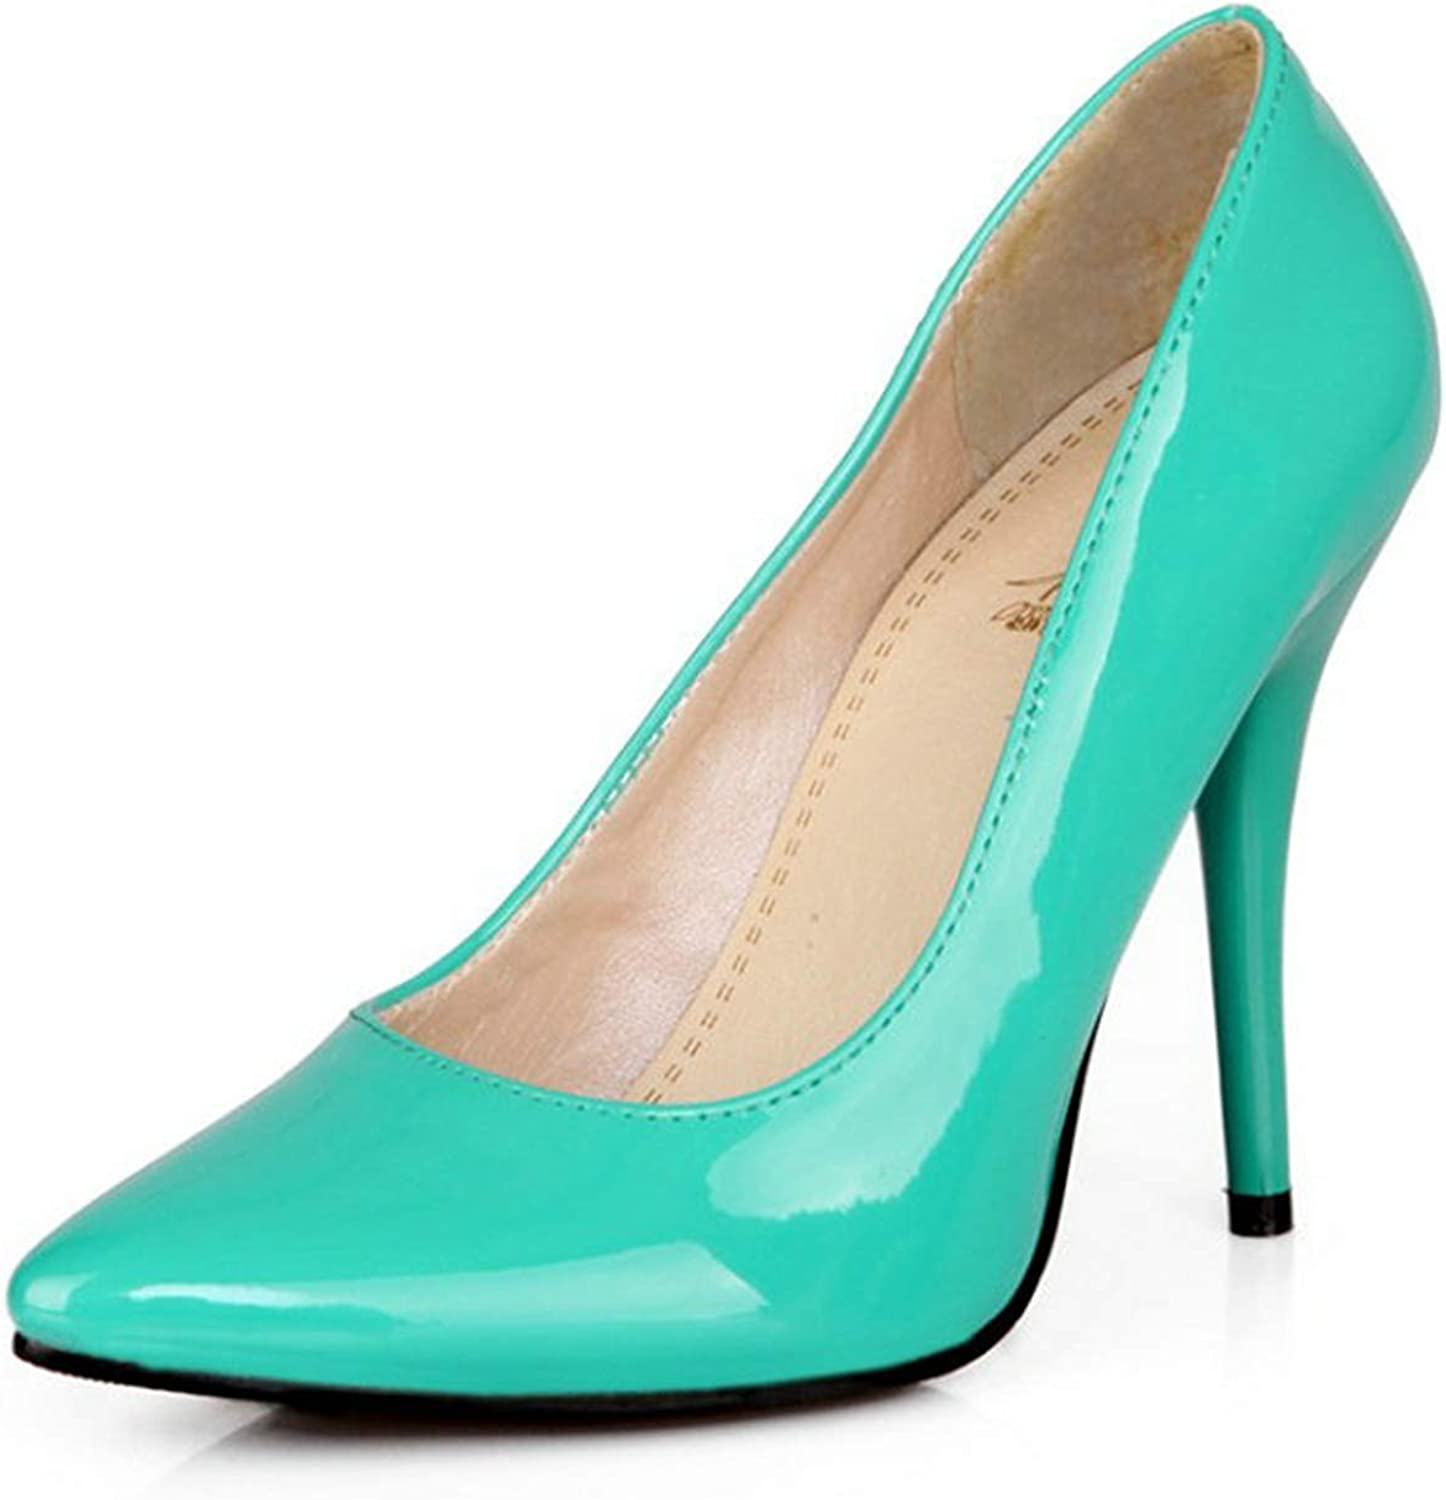 Micca Bacain PU Leather Woman Thin High Heels colorful Stiletto Office Lady Pumps Women shoes